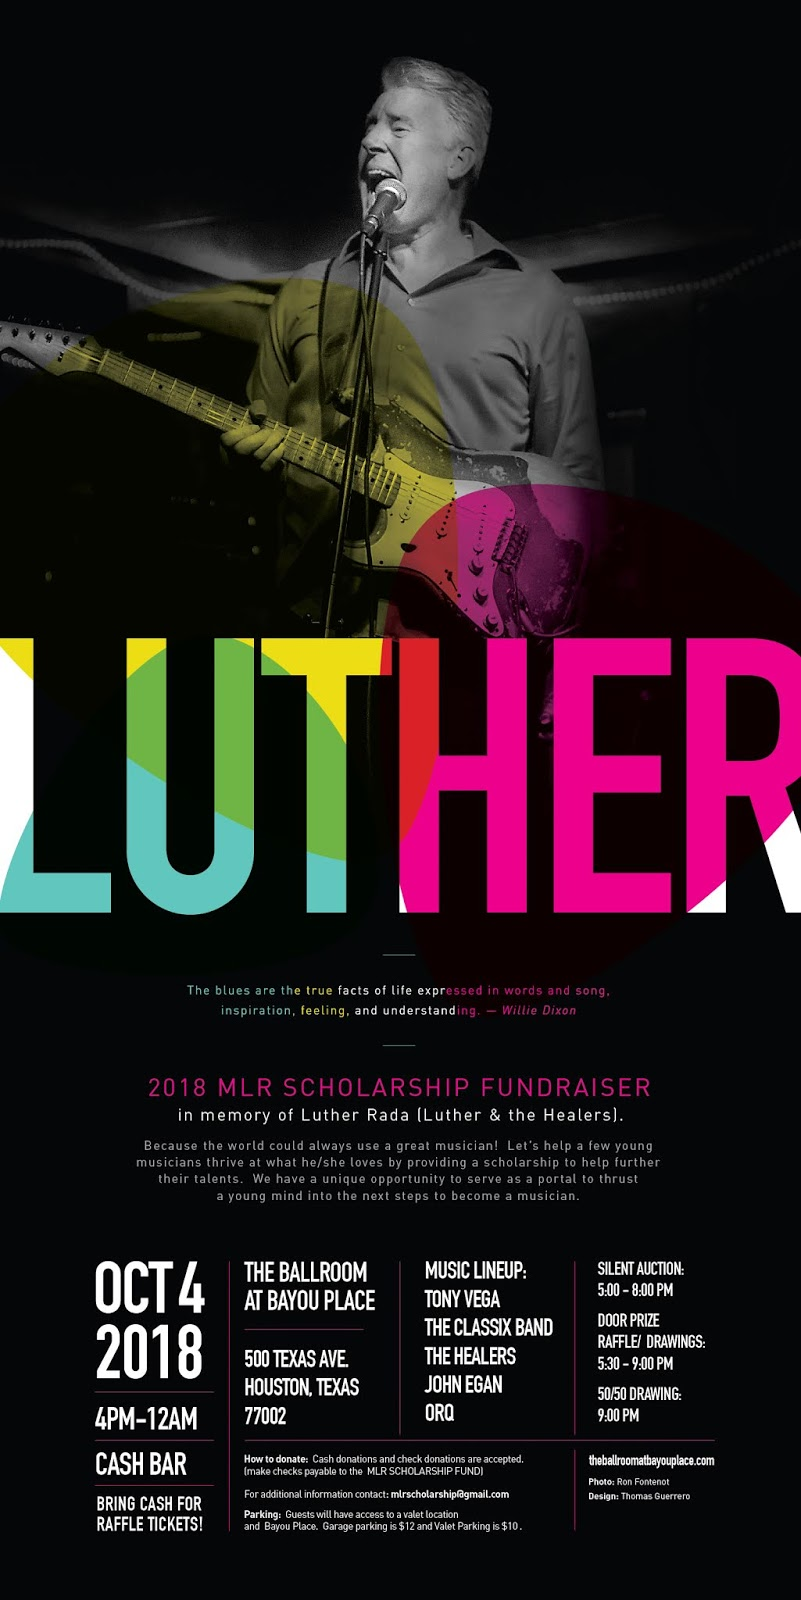 luther and the healers memorial scholarship fundraiser october 4